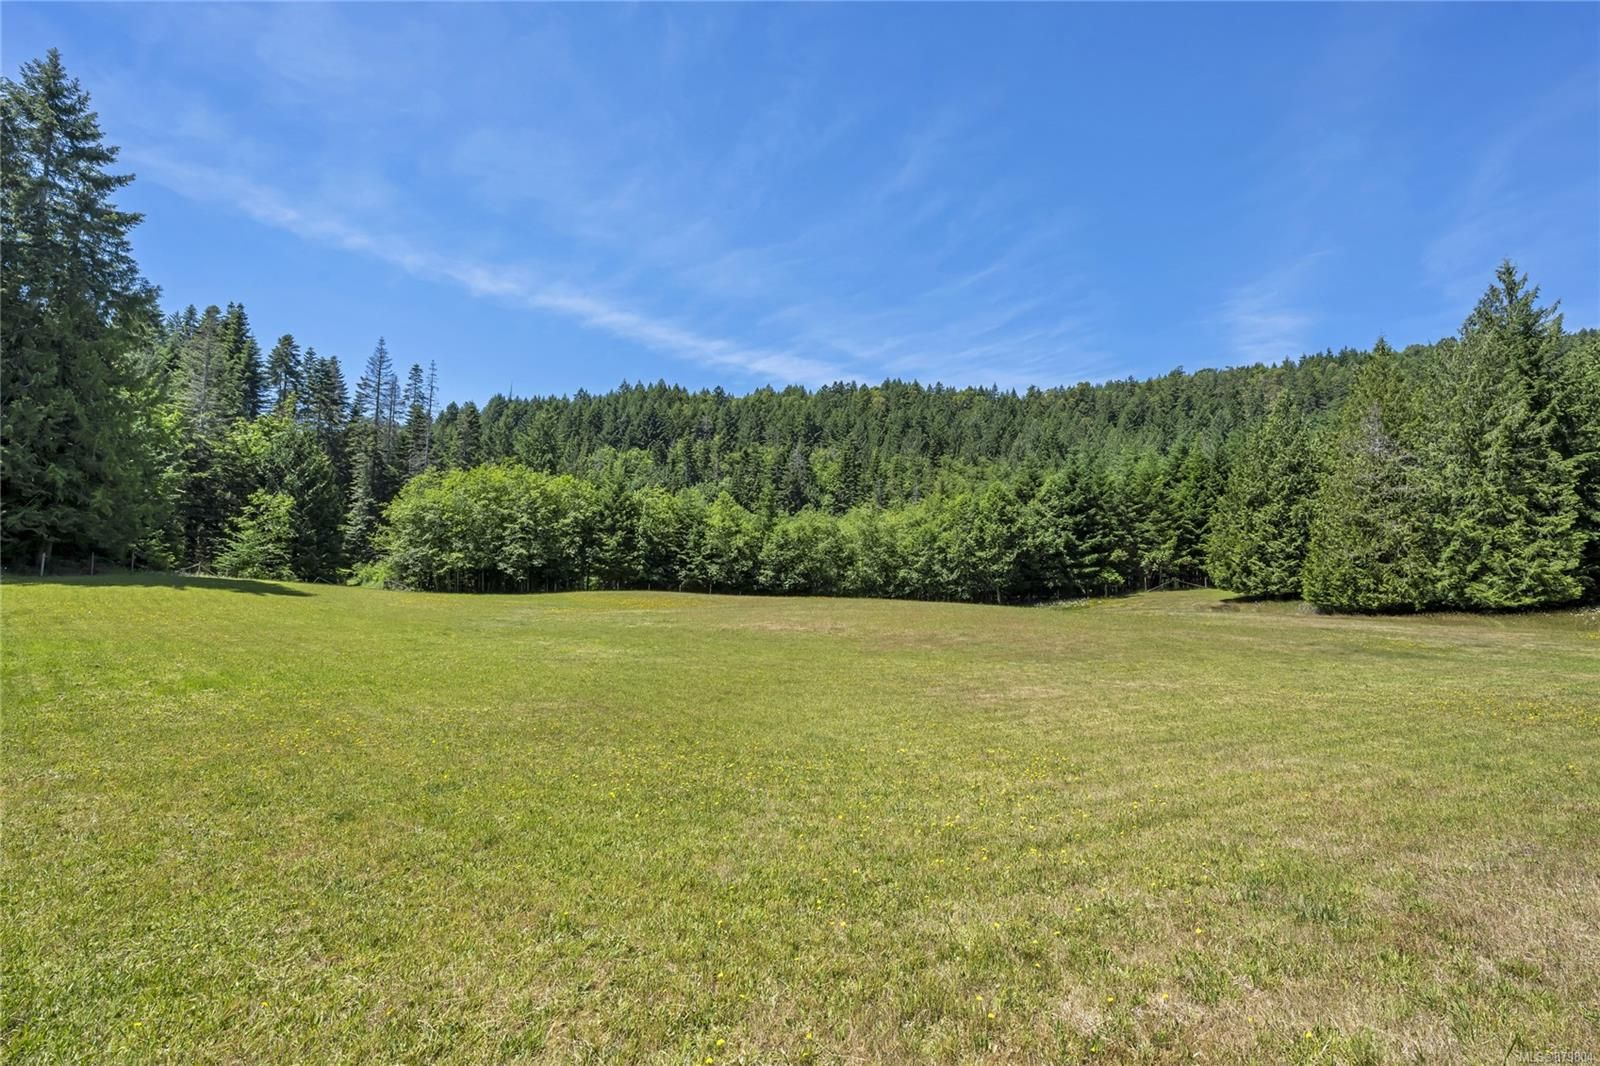 Photo 53: Photos: 3596 Riverside Rd in : ML Cobble Hill Manufactured Home for sale (Malahat & Area)  : MLS®# 879804